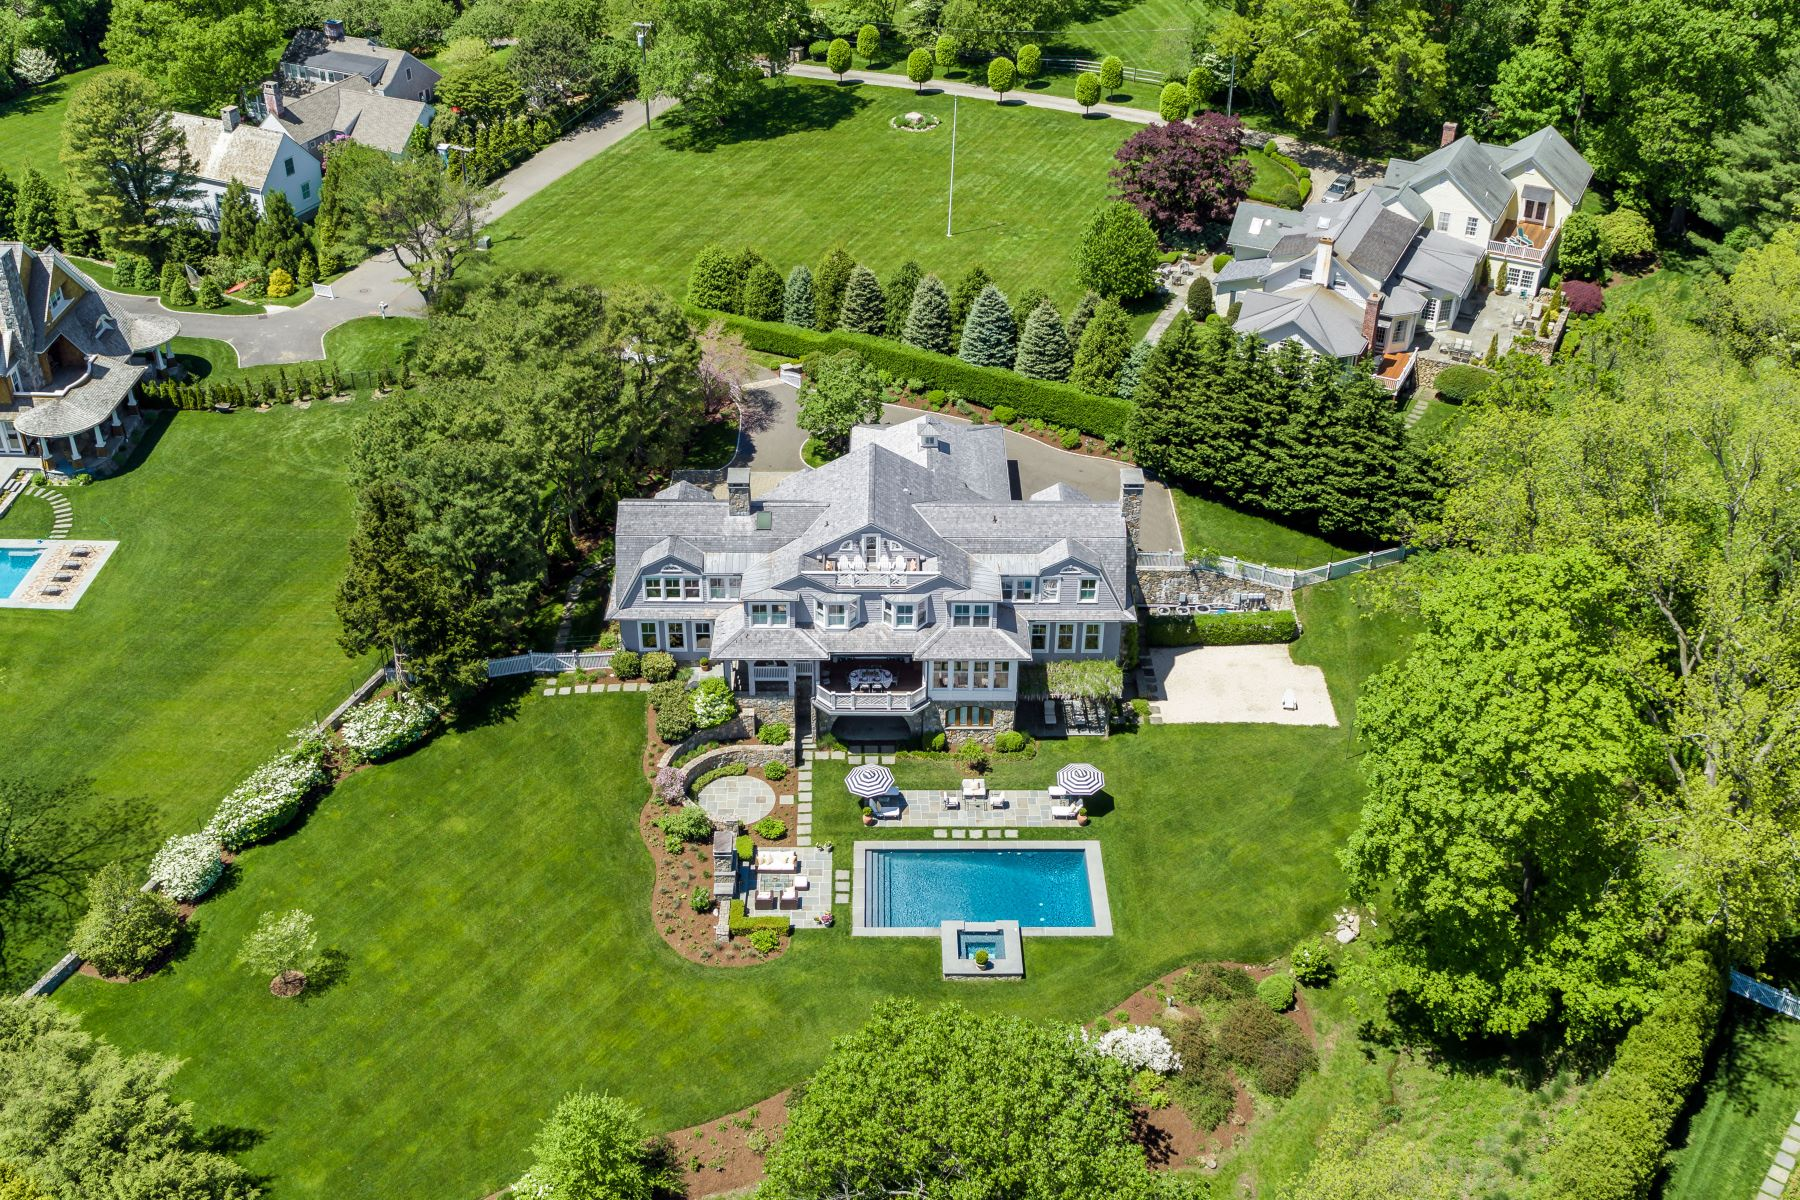 Single Family Homes for Sale at Gracing a Hilltop Setting at Prestigious Minute Man Hill 16 Minute Man Hill Westport, Connecticut 06880 United States